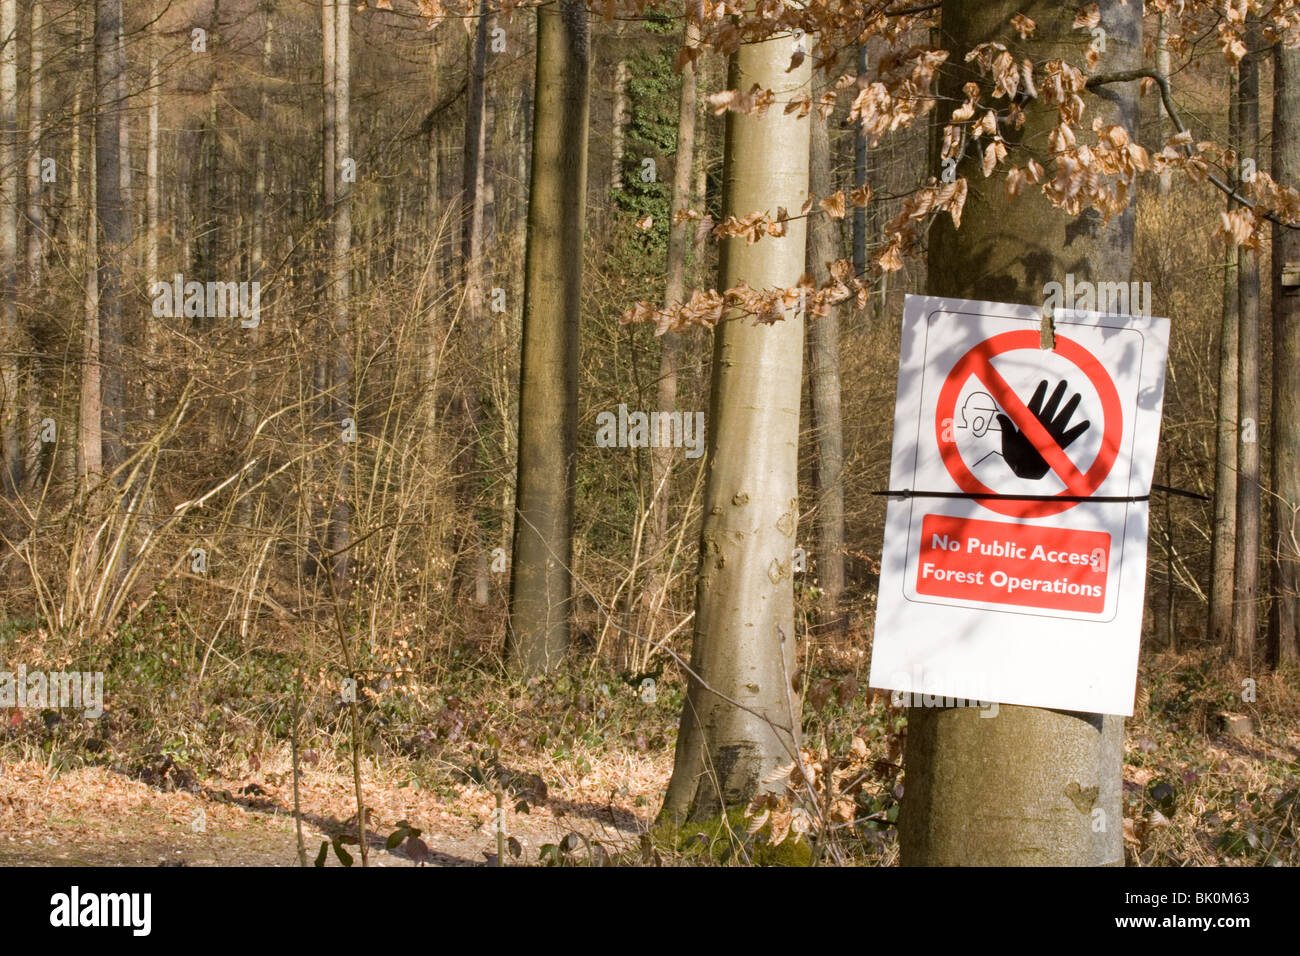 Forest Management No Public Access Forest Operations Sign UK - Stock Image